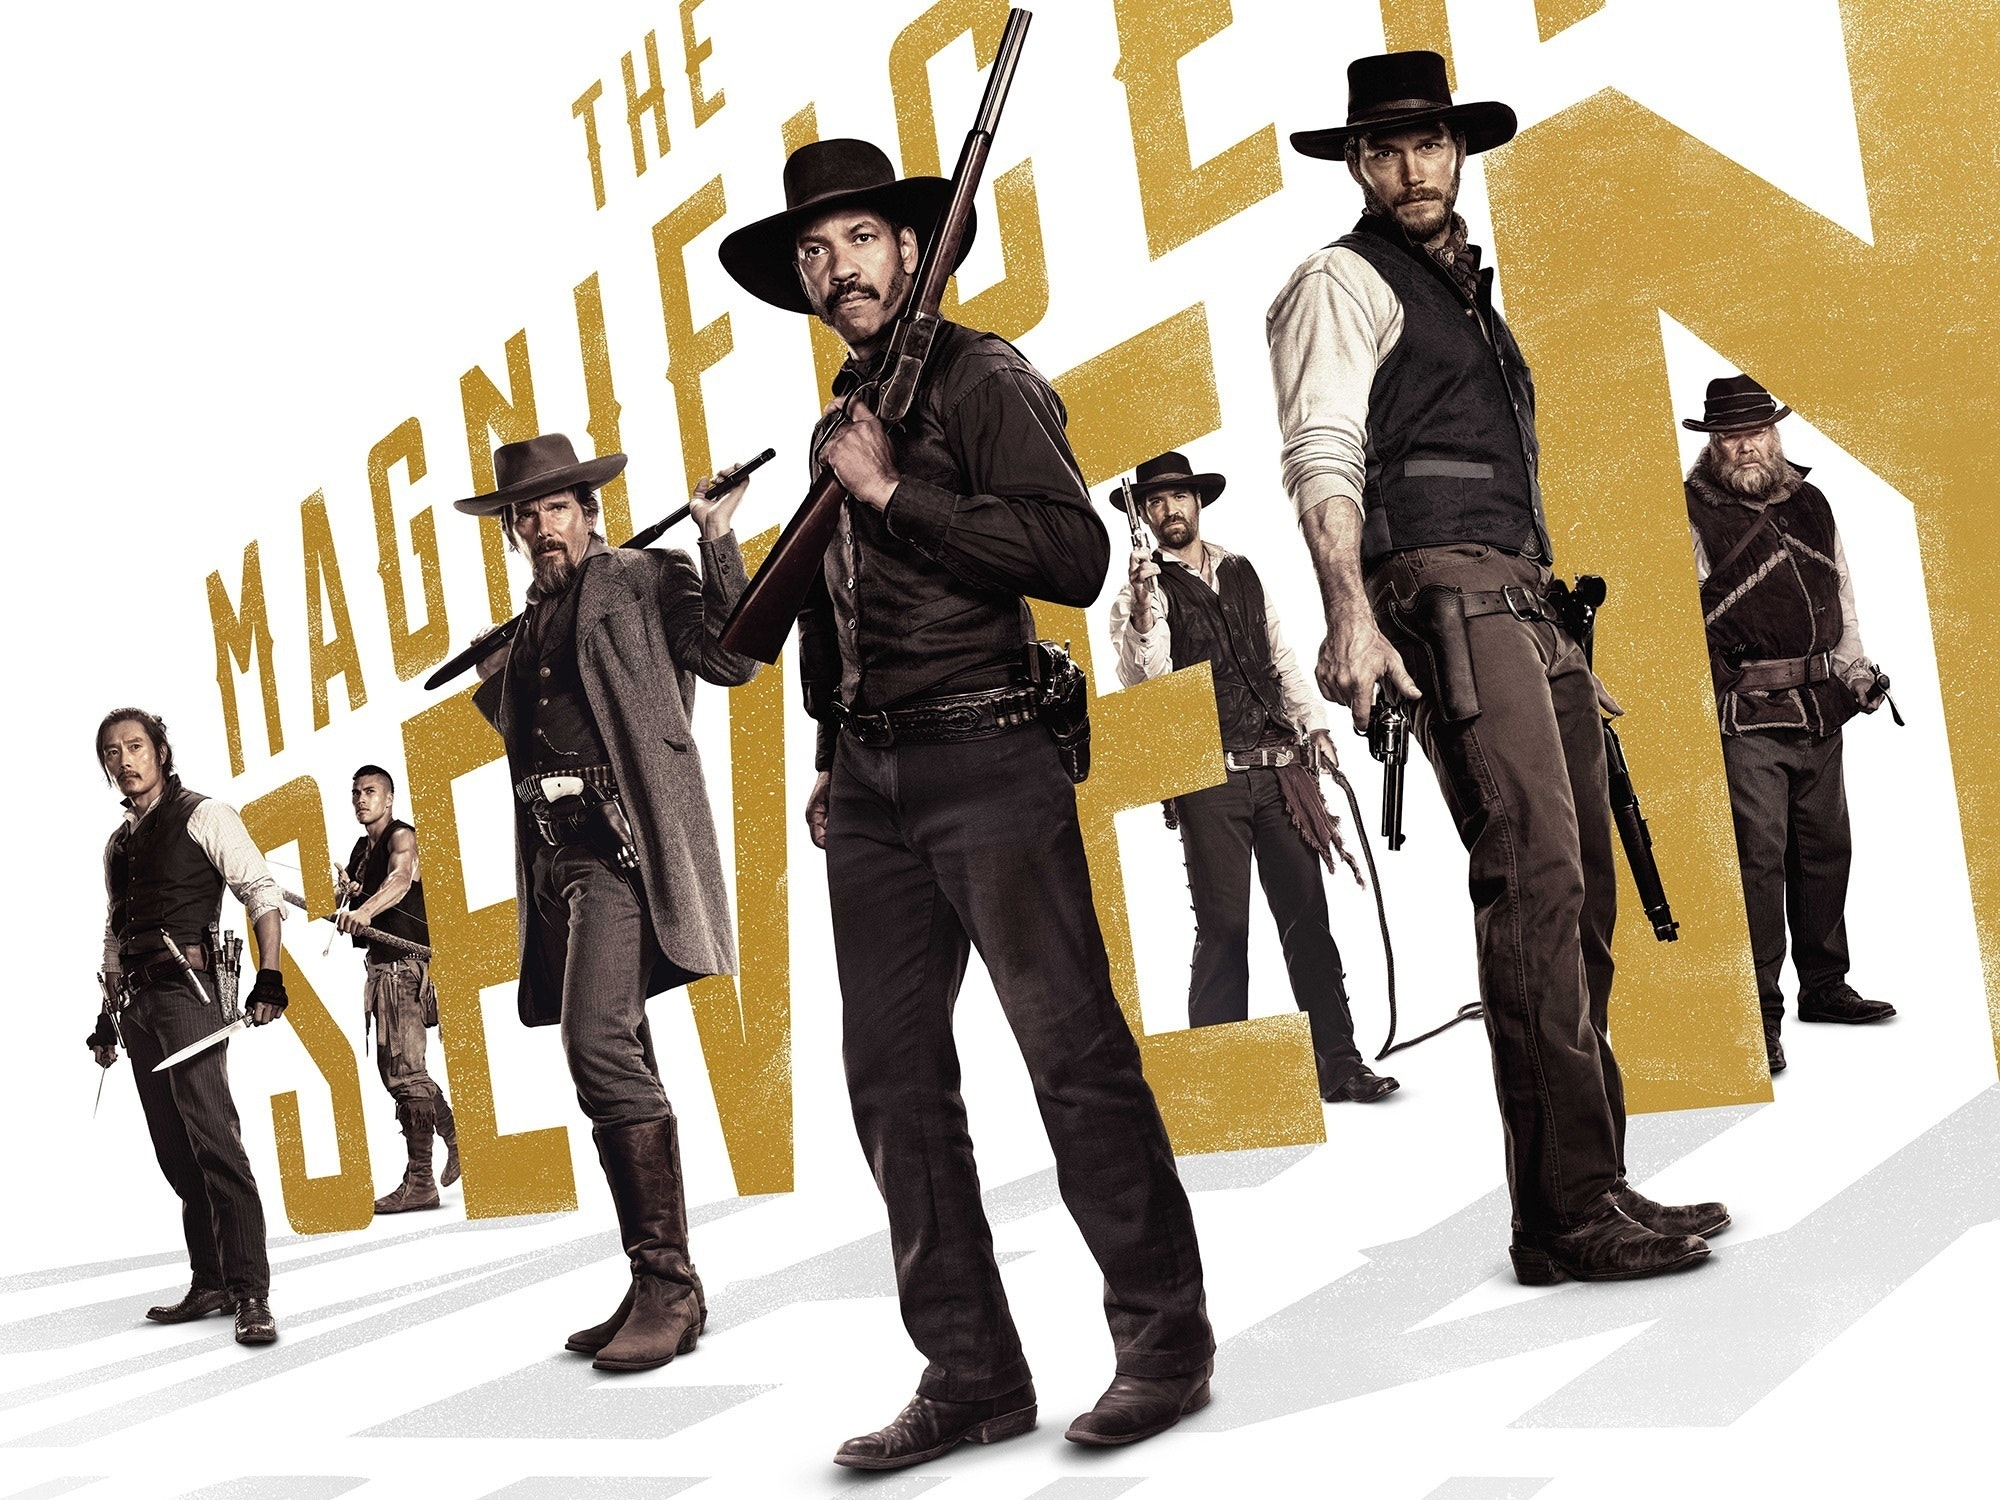 The 2016 remake of Magnificent Seven starring Denzel Washington, Chris Pratt, and Ethan Hawke